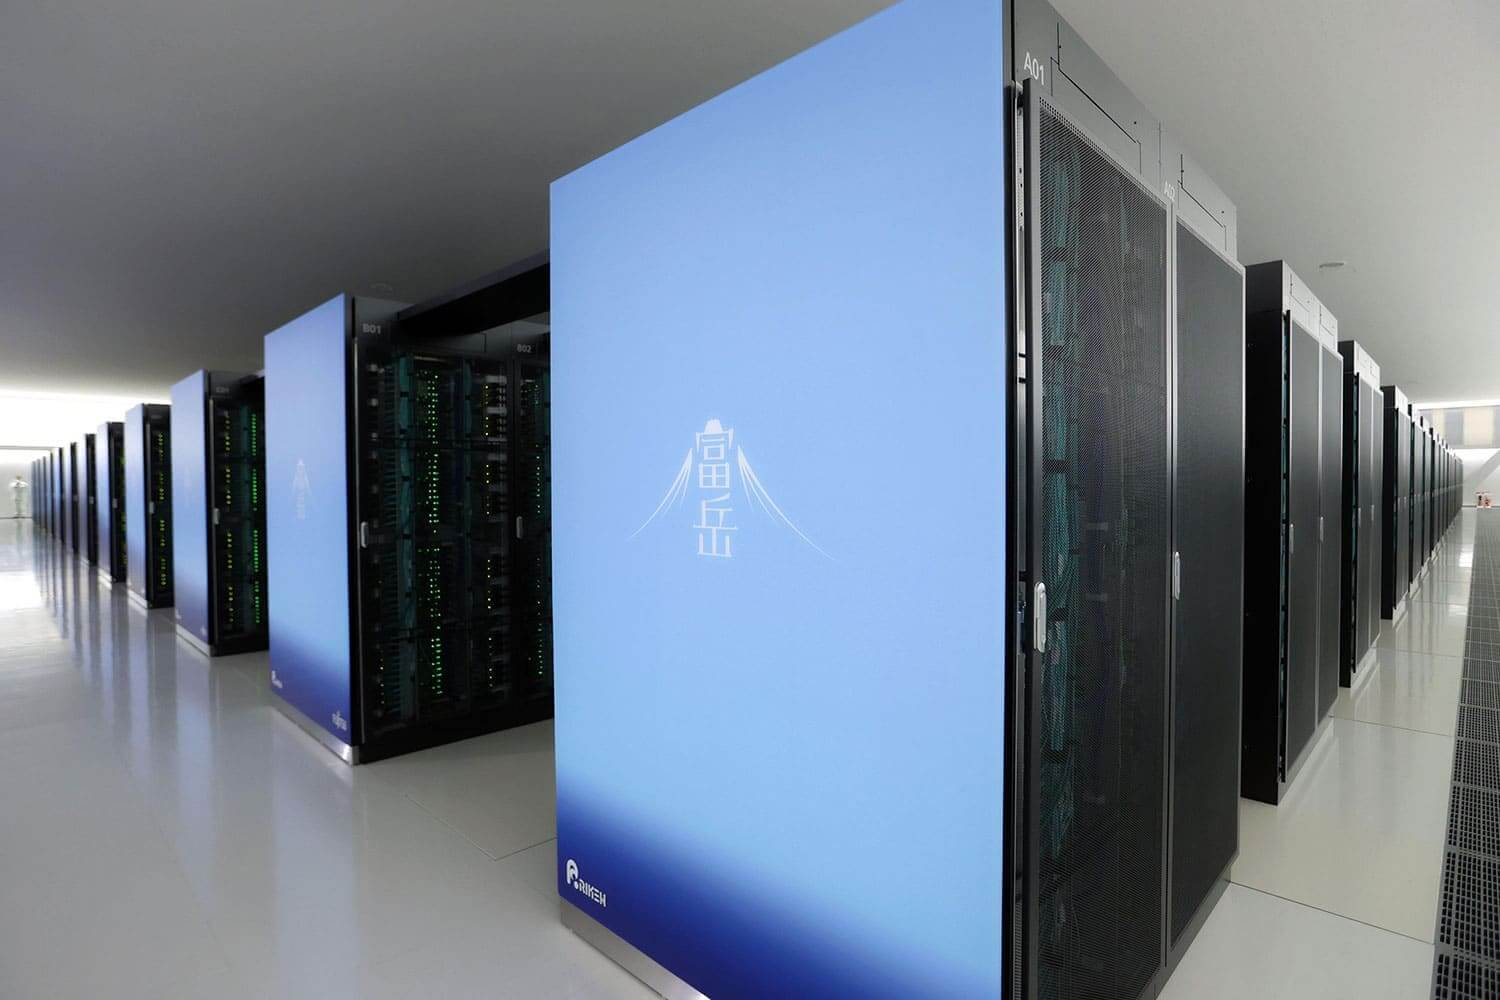 Japan's ARM-based Fugaku is the world's fastest supercomputer